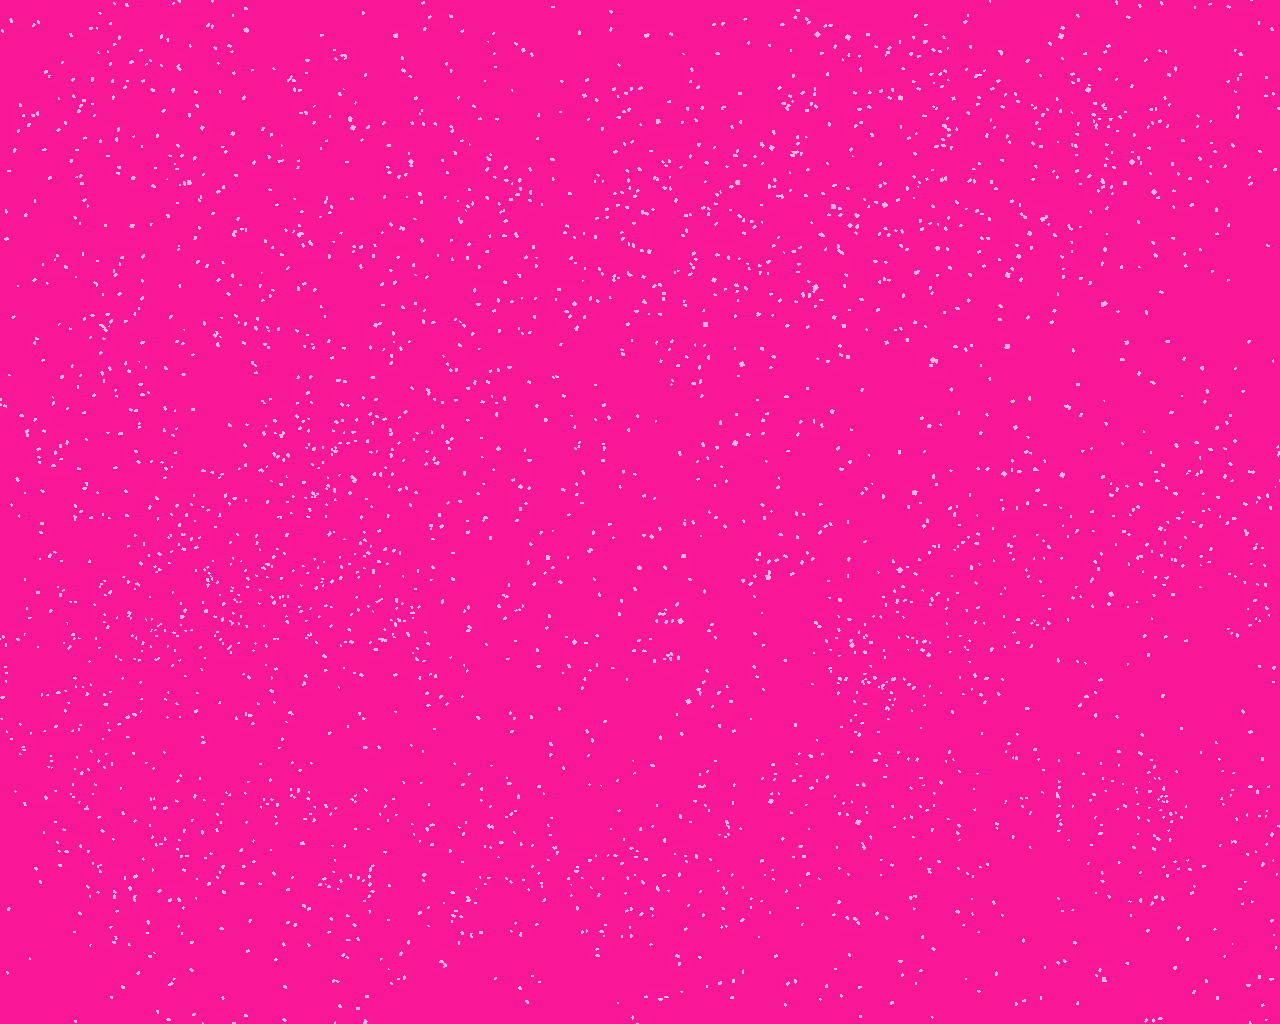 pink glitter wallpaper Funny Amazing Images 1280x1024